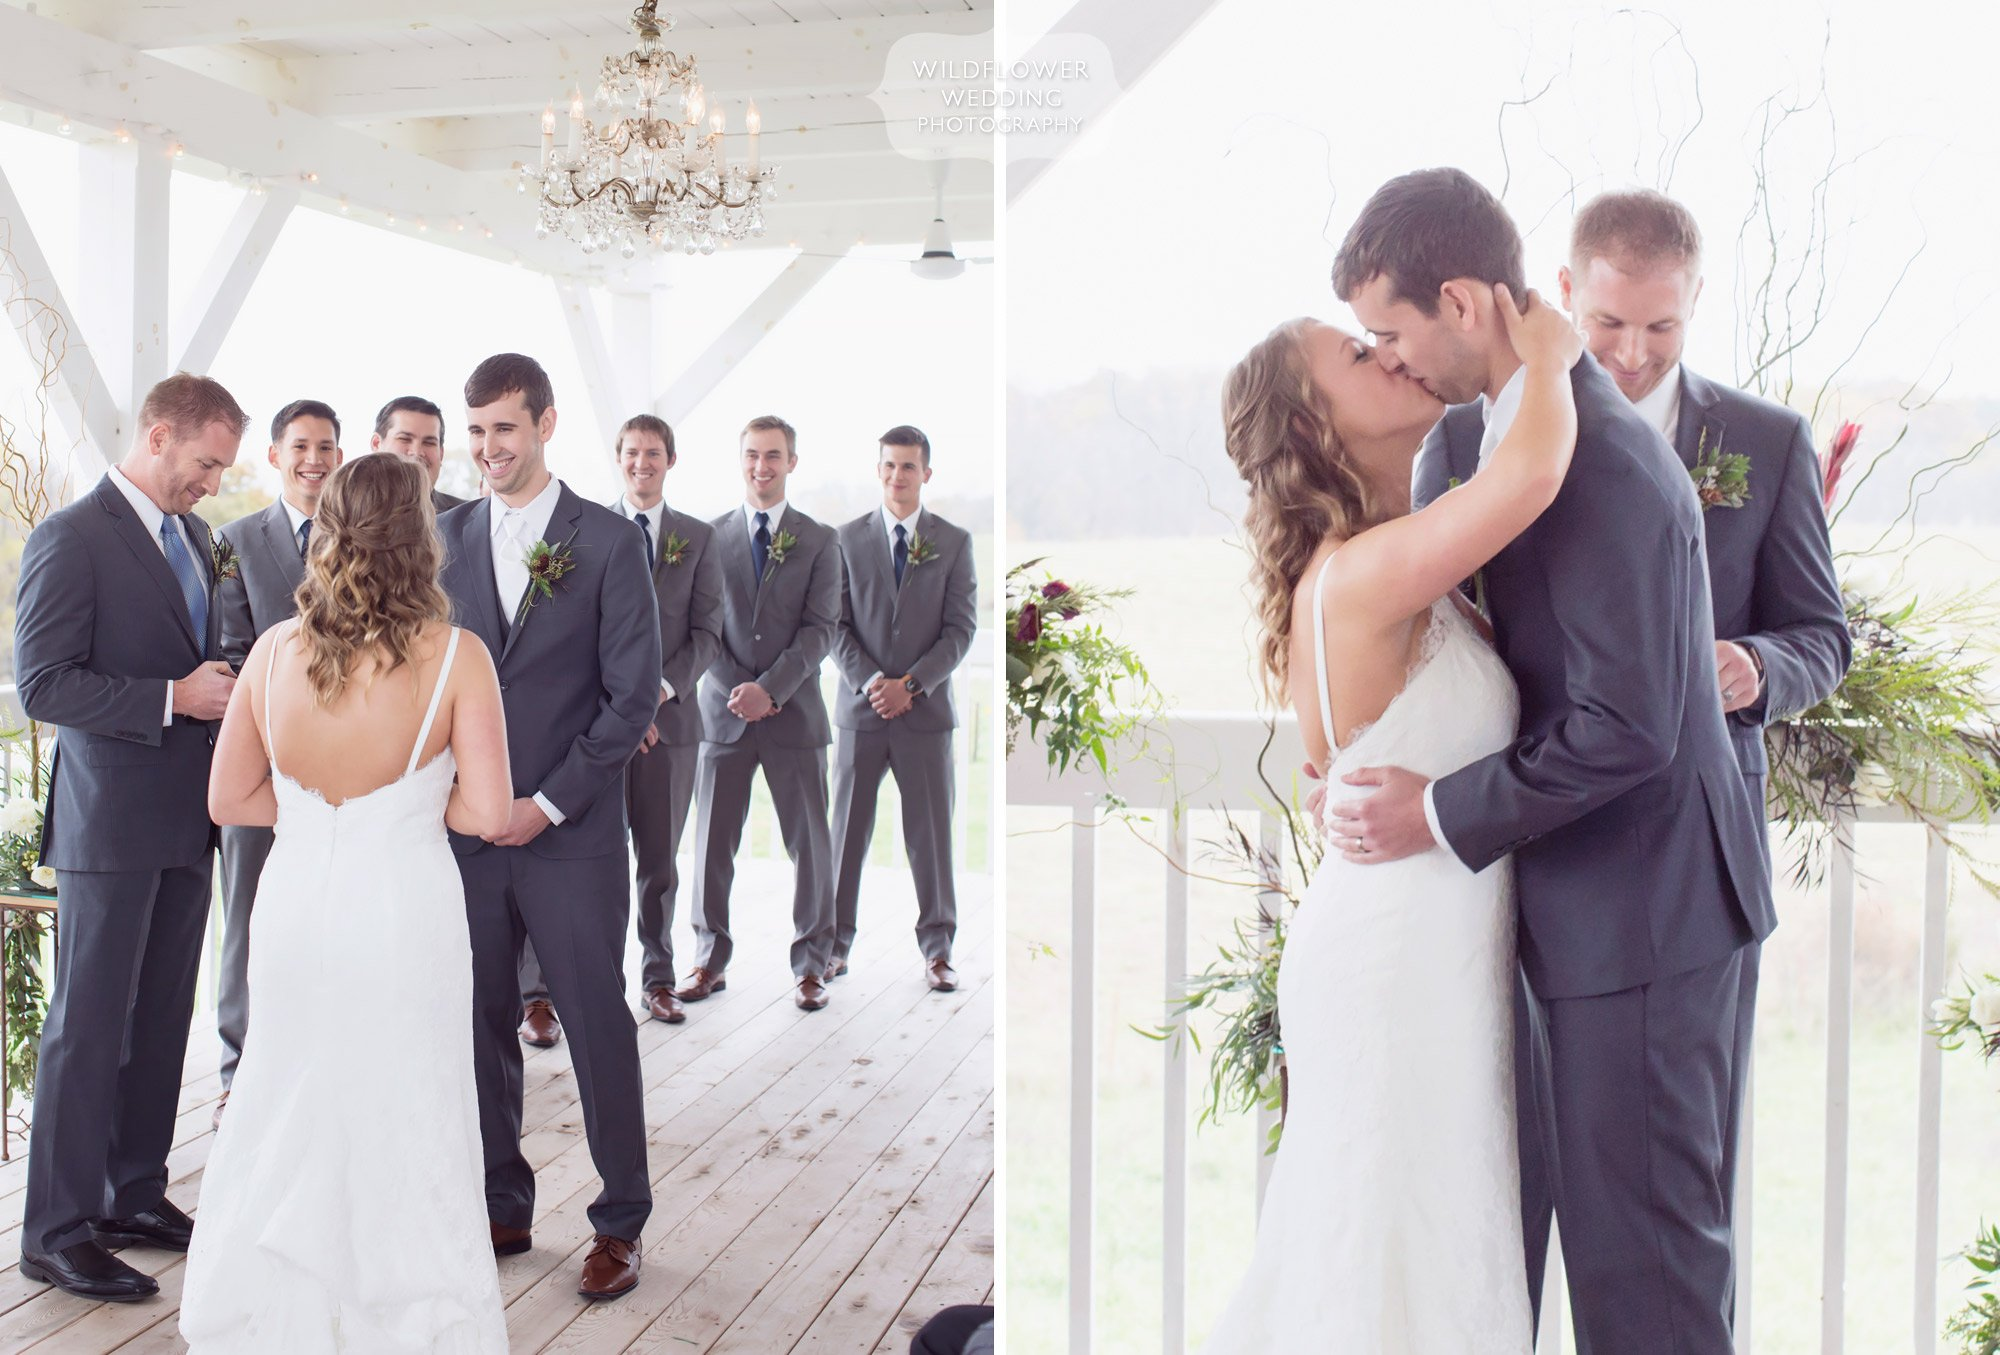 The bride and groom kiss at the end of their ceremony on the Blue Bell Farm deck wedding.